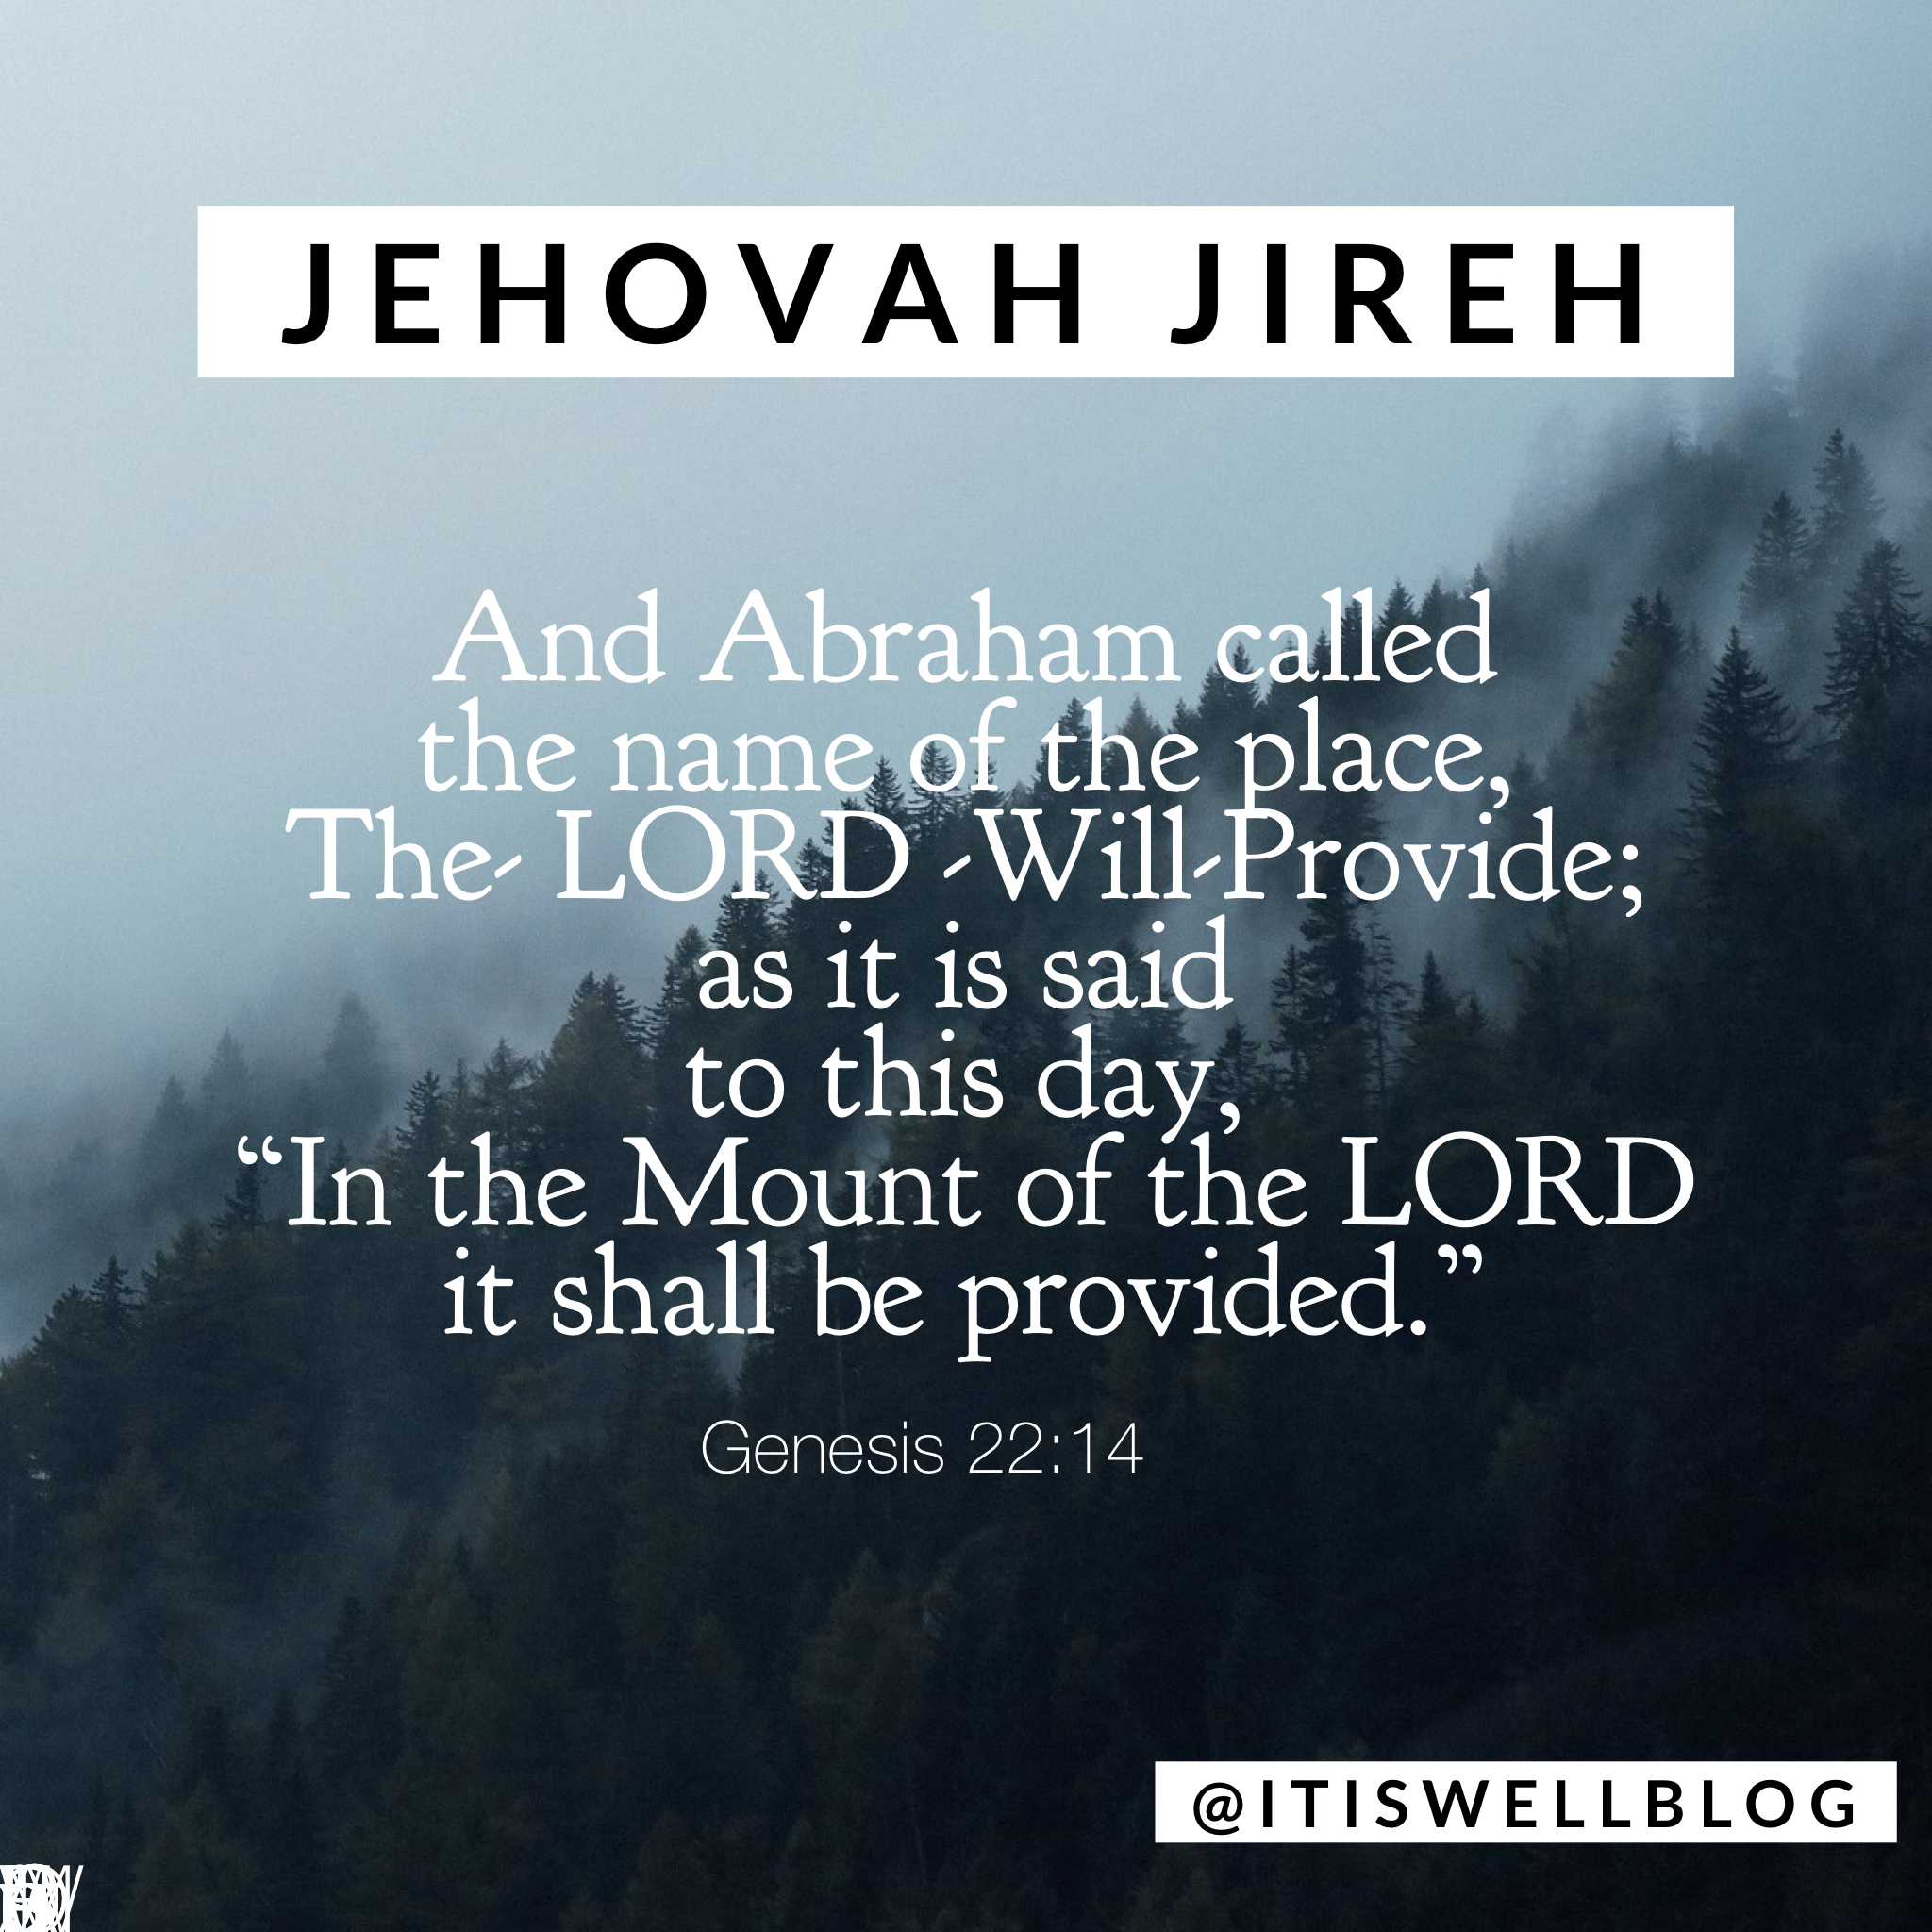 Jehovah Jireh, the Lord will provide.